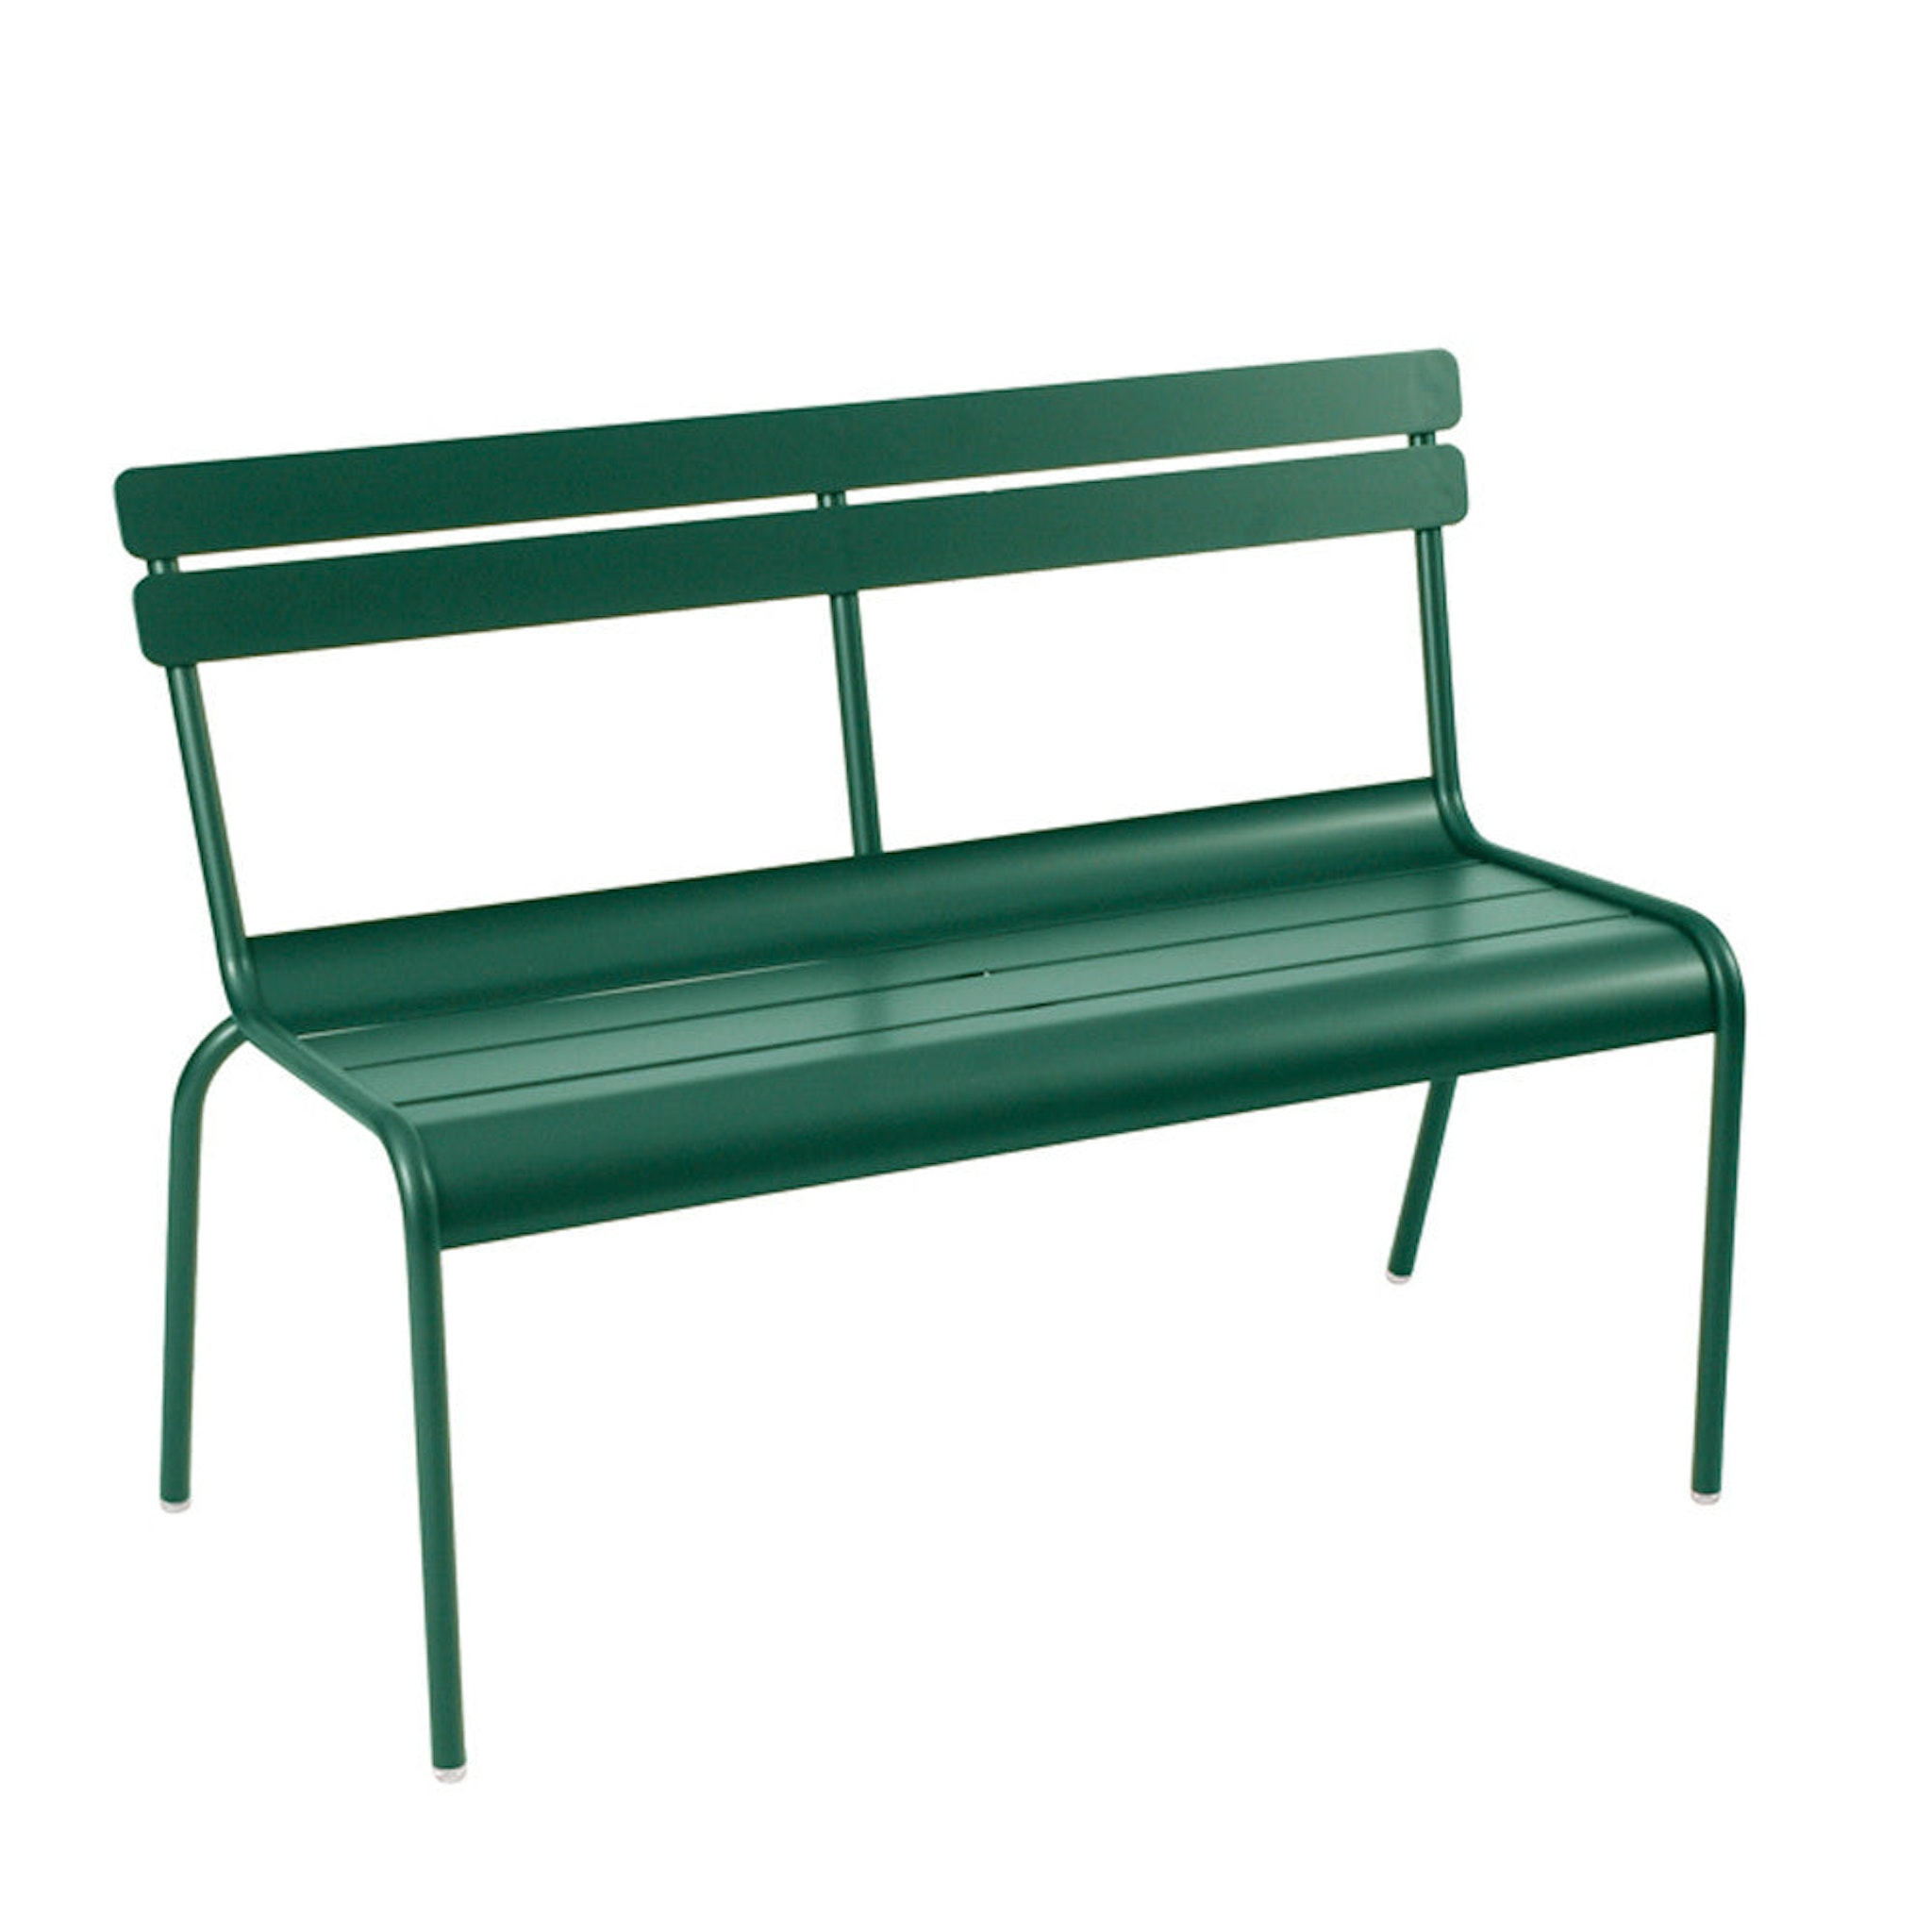 Luxembourg Stacking Bench by Fermob